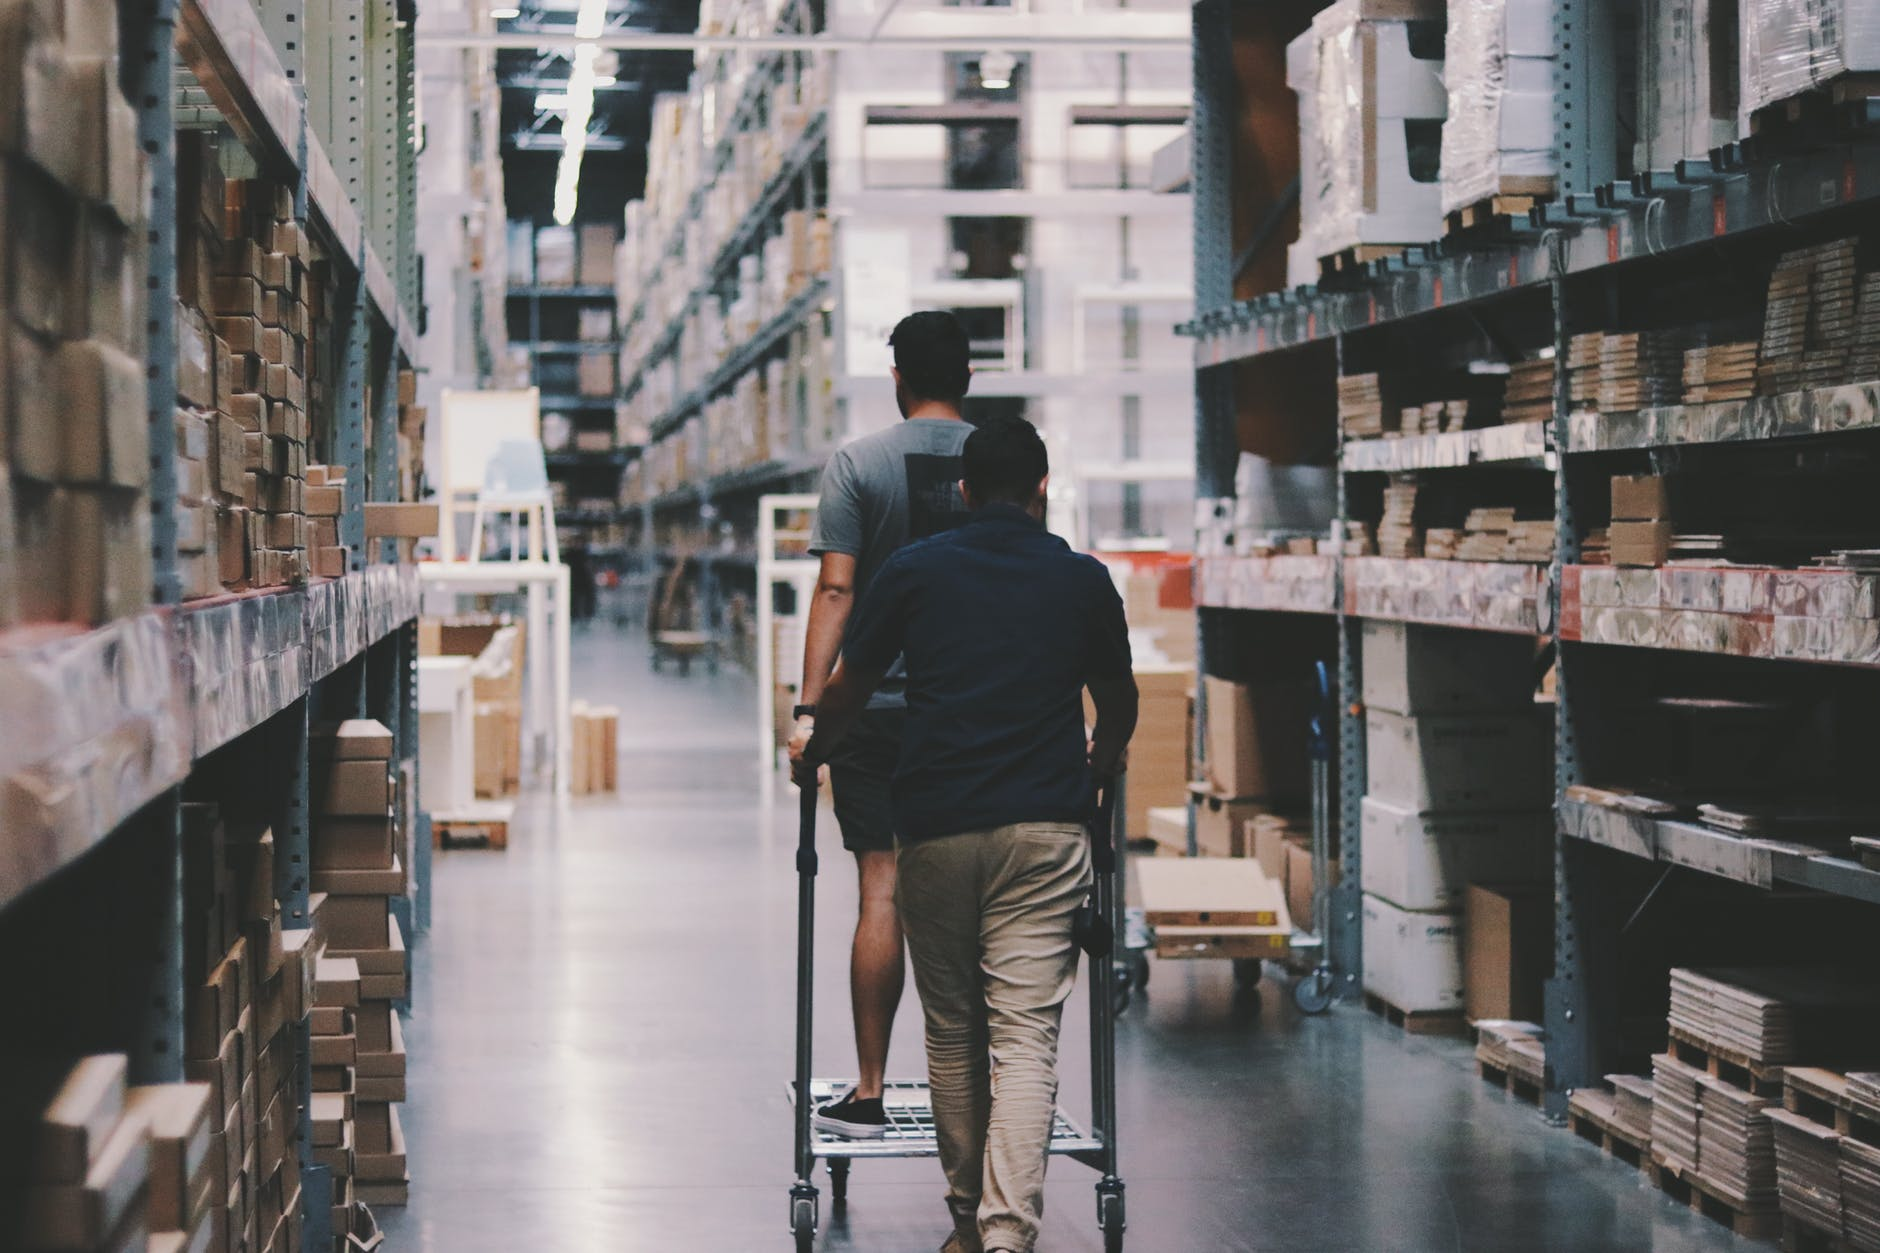 Two men, one on a cart & one pushing it, going through a warehouse; image by Alexander Isreb, via Pexels.com.